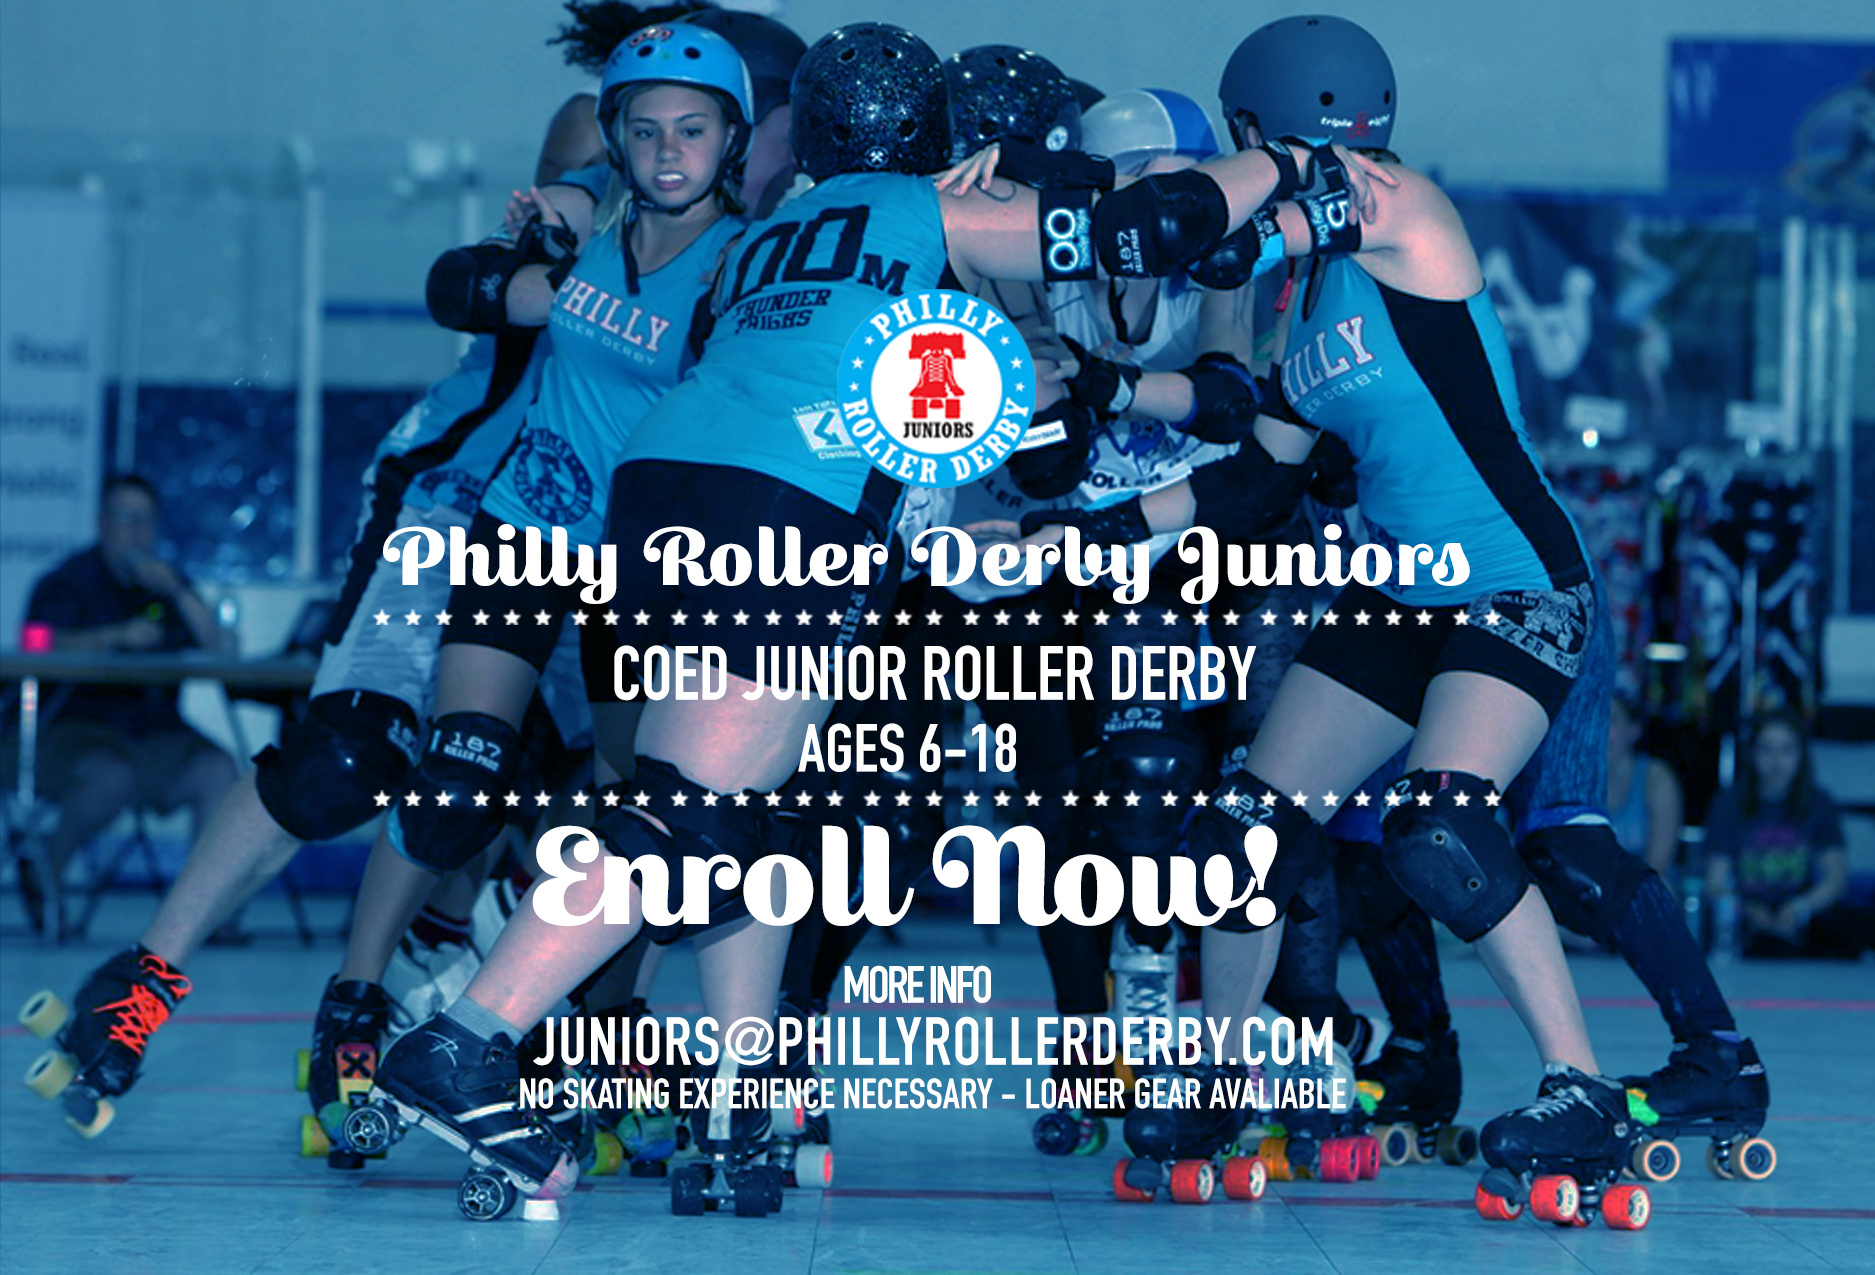 Join Philly Roller Derby Juniors!